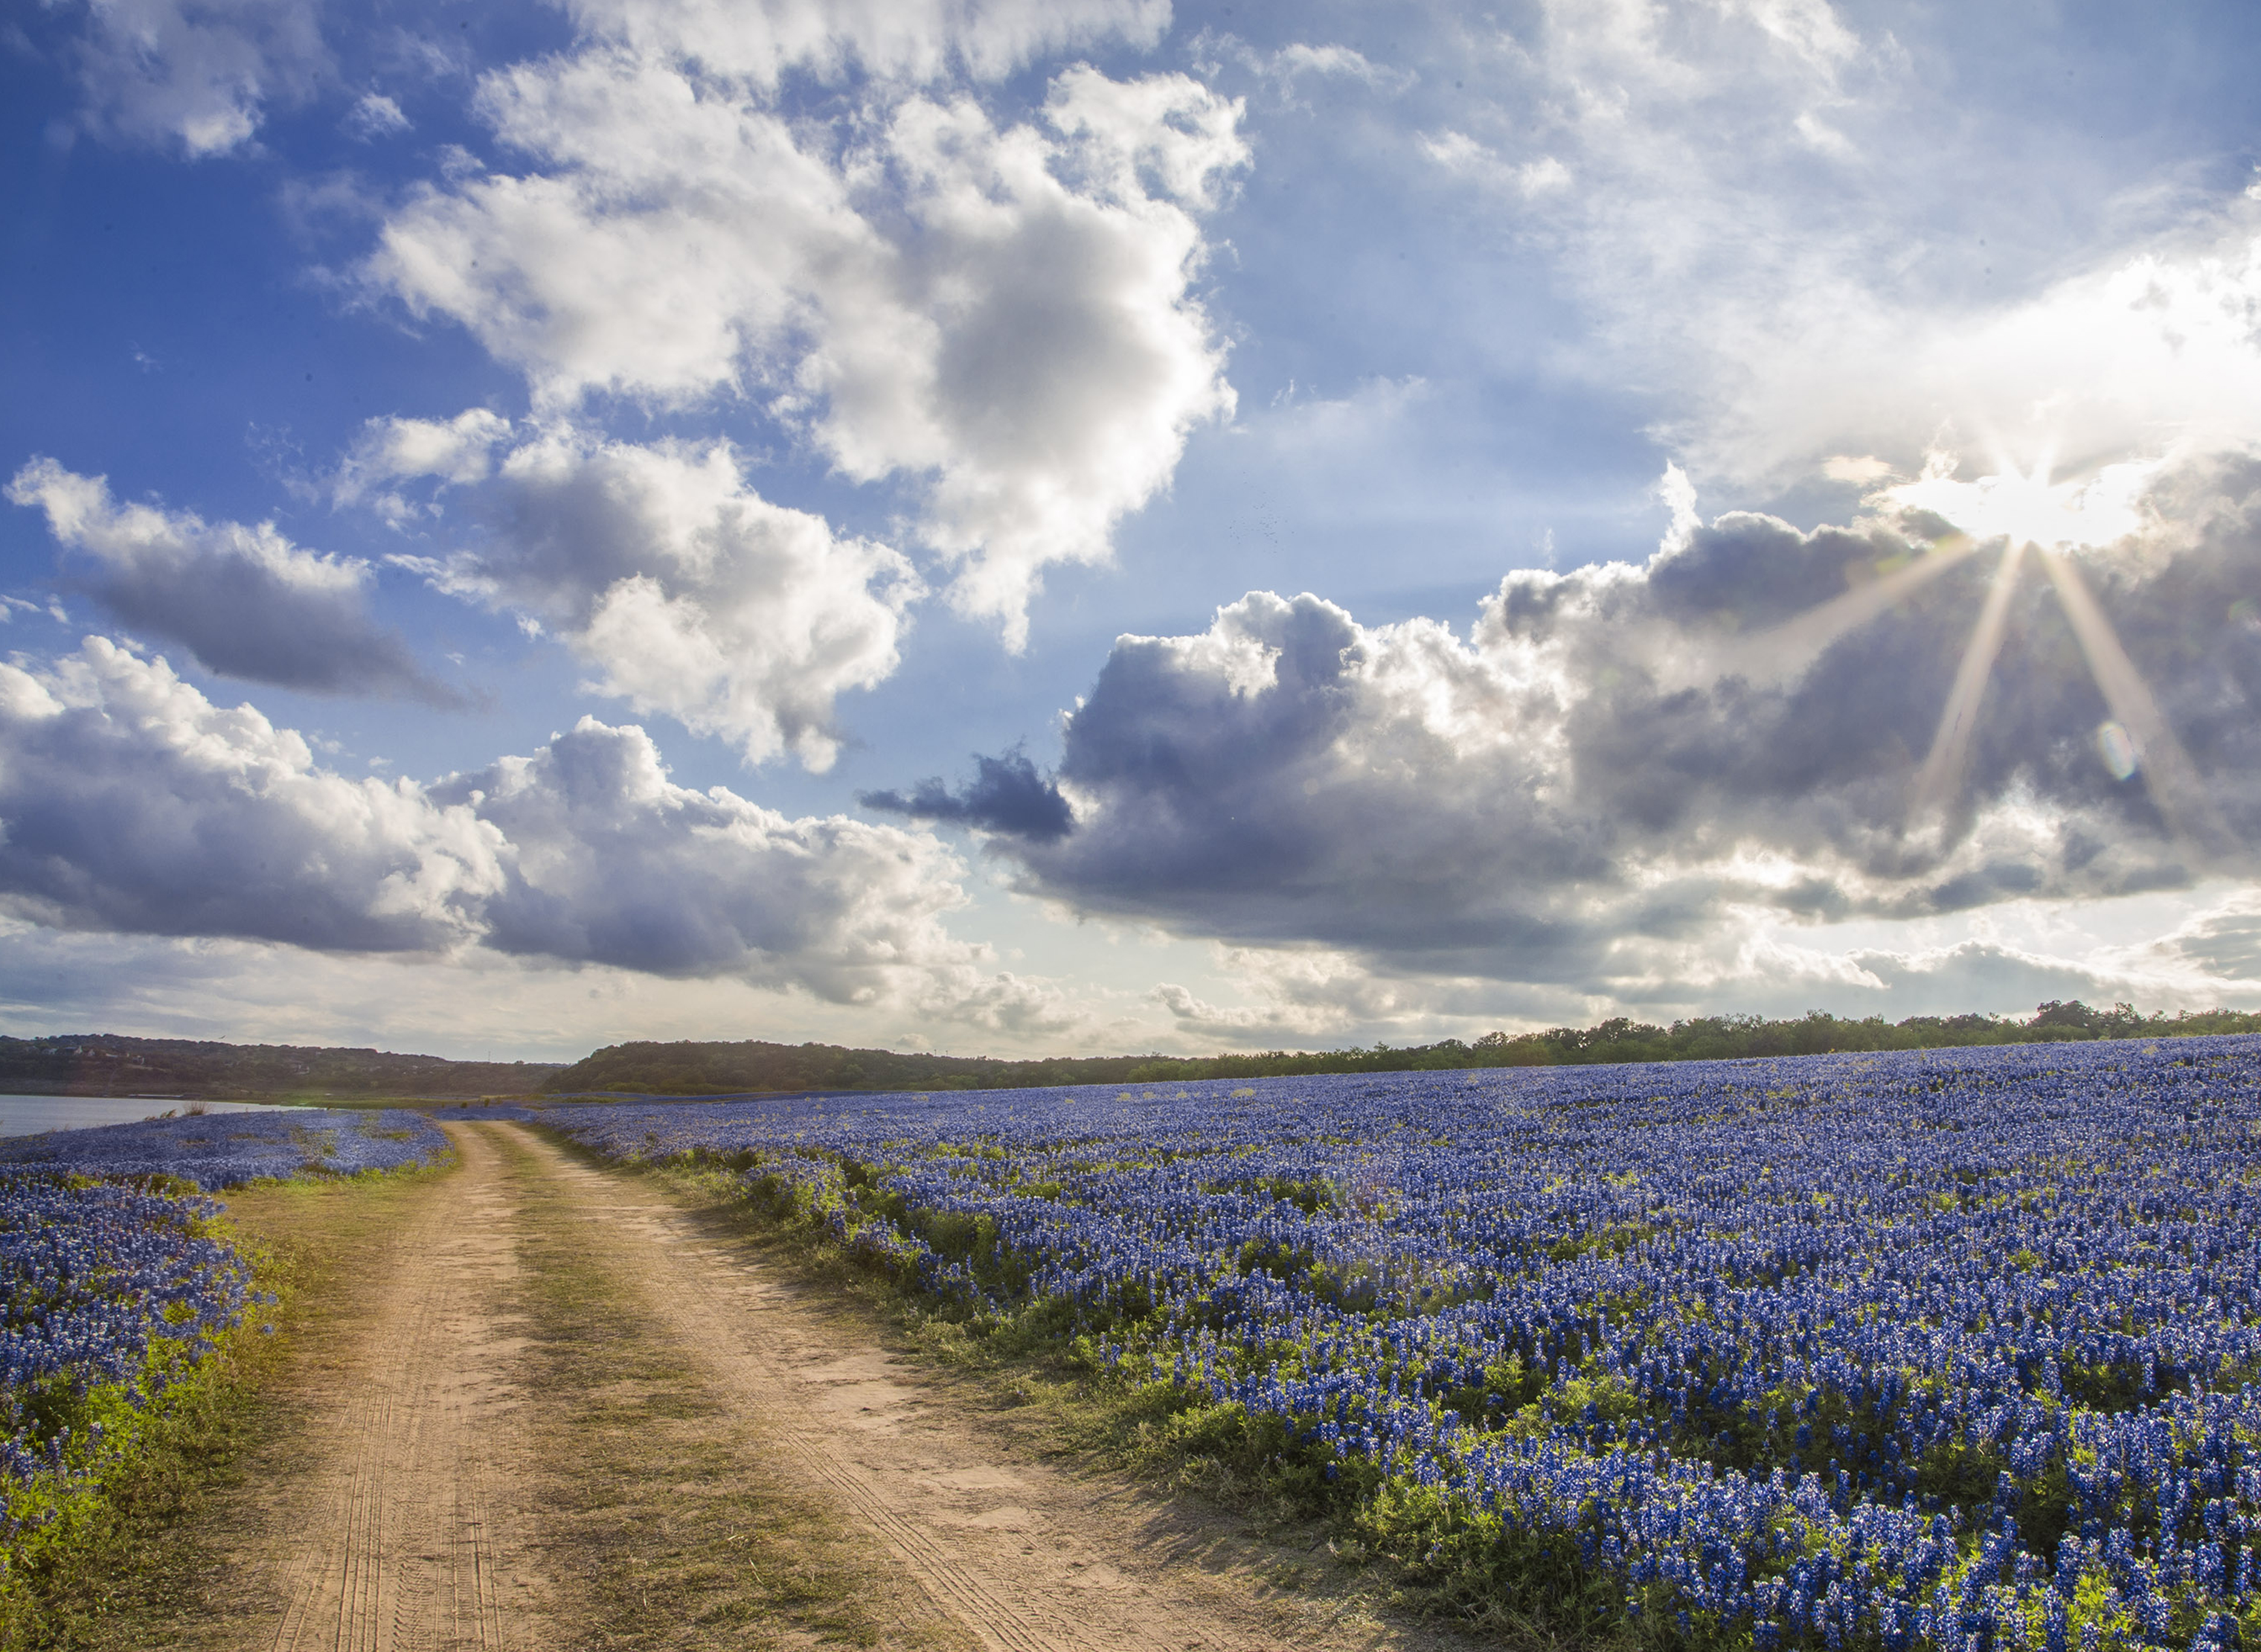 5 Hot Spots In The Hill Country To See Bluebonnets In 2018